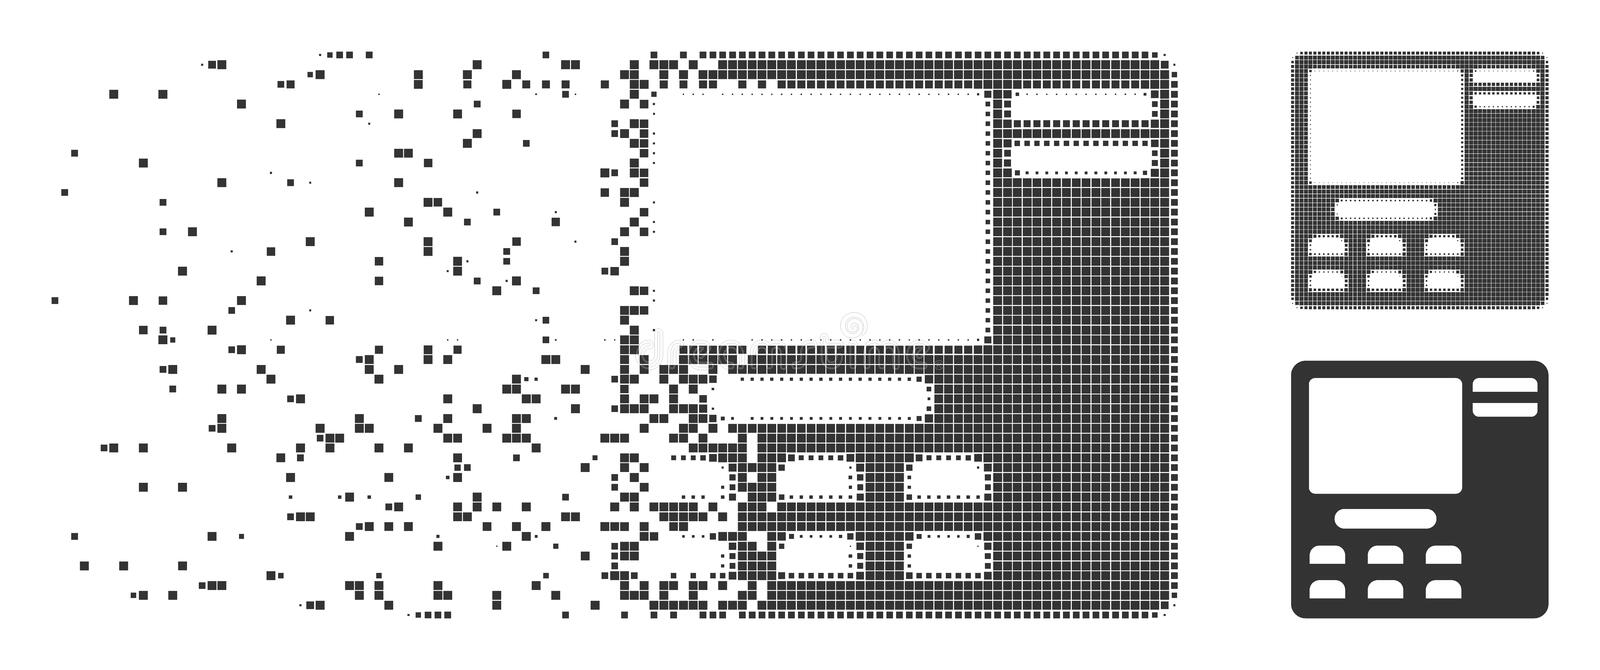 Shredded Pixel Halftone Bank ATM Icon. Gray vector bank ATM icon in dissolved, dotted halftone and undamaged whole versions. Square dots are used for stock illustration